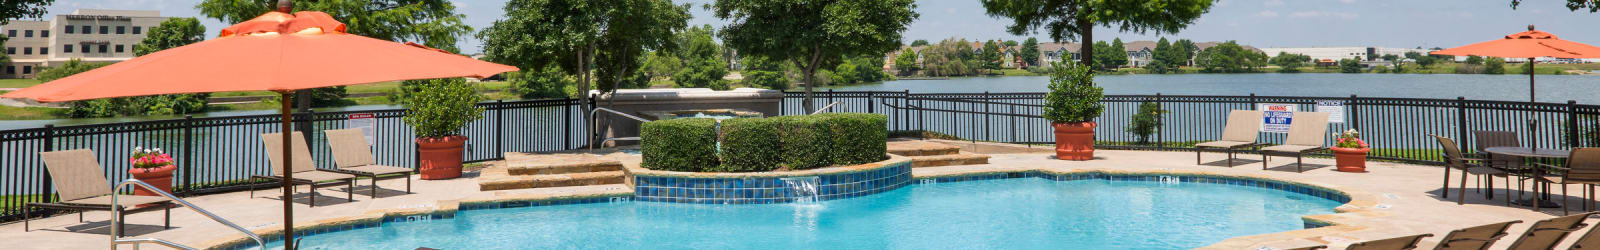 Apply now at Crescent Cove at Lakepointe in Lewisville, Texas